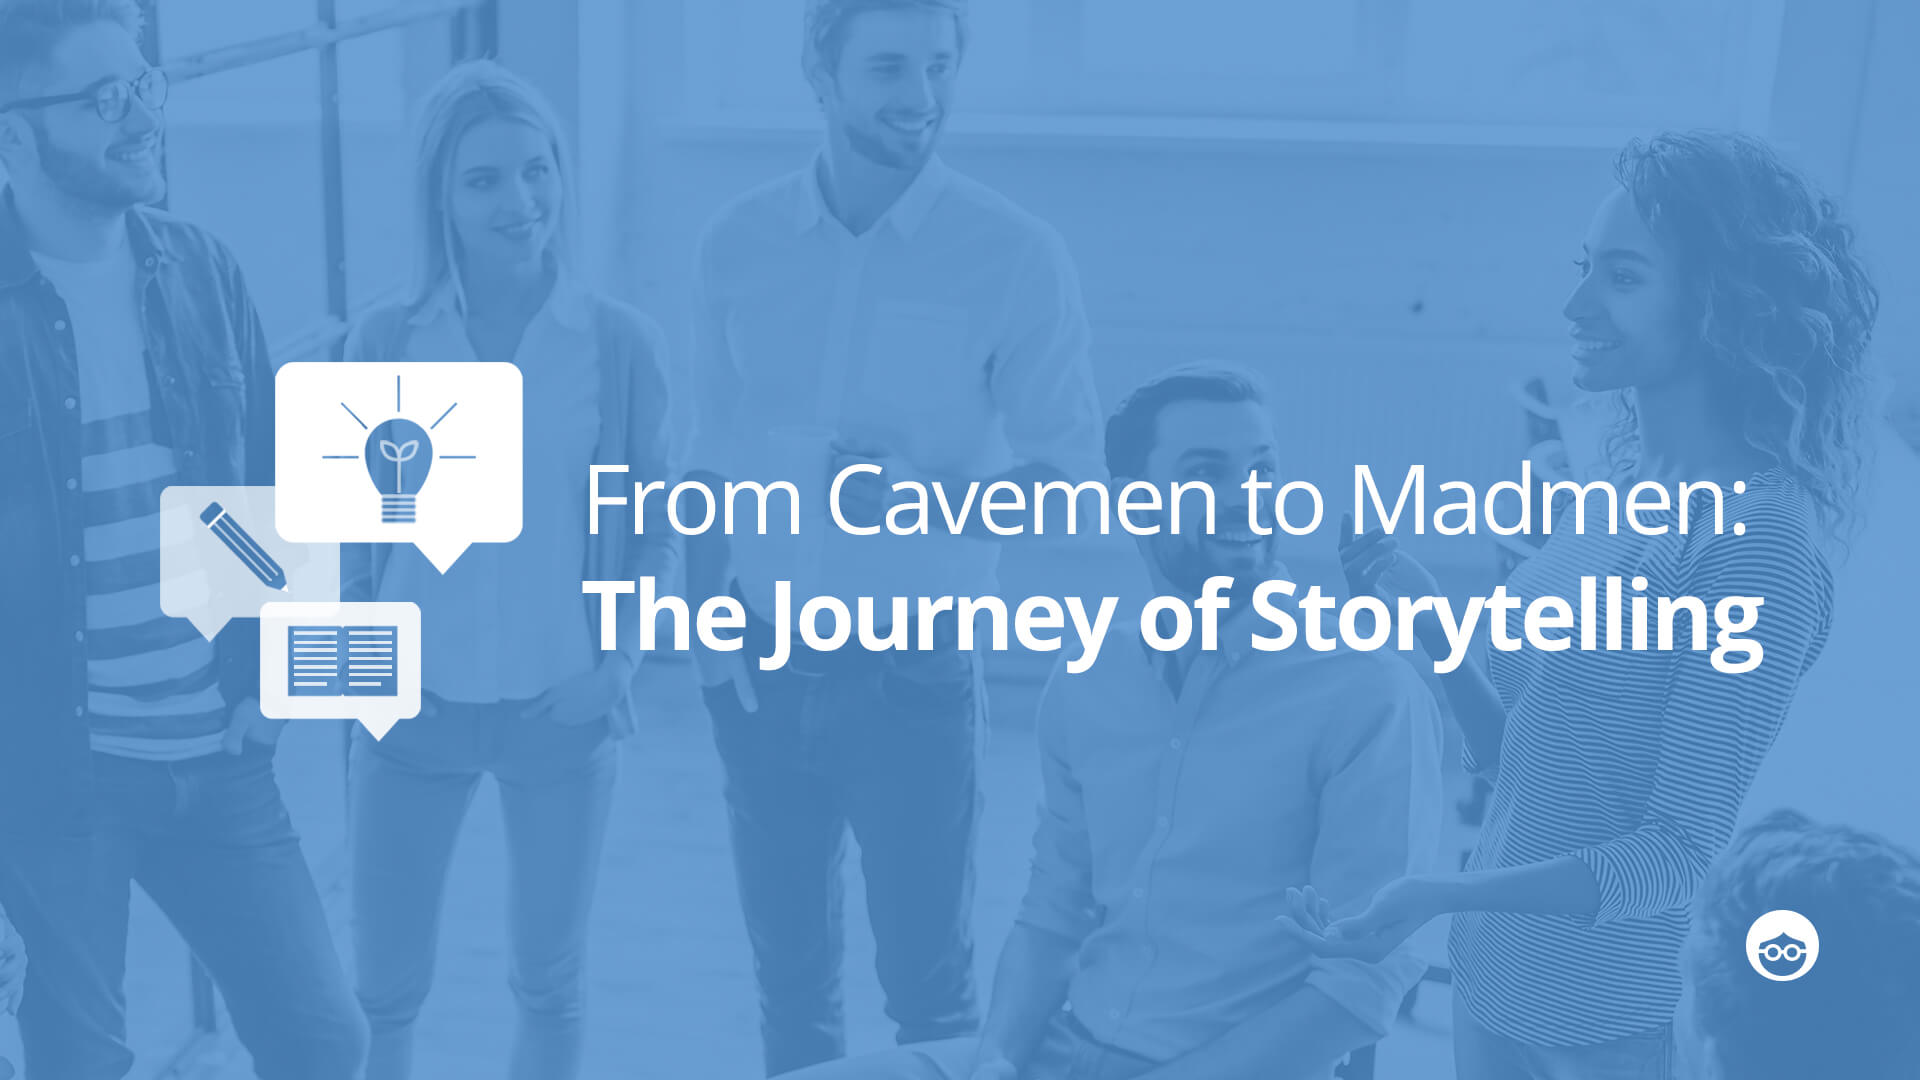 From Cavemen to Mad Men: The Journey of Storytelling